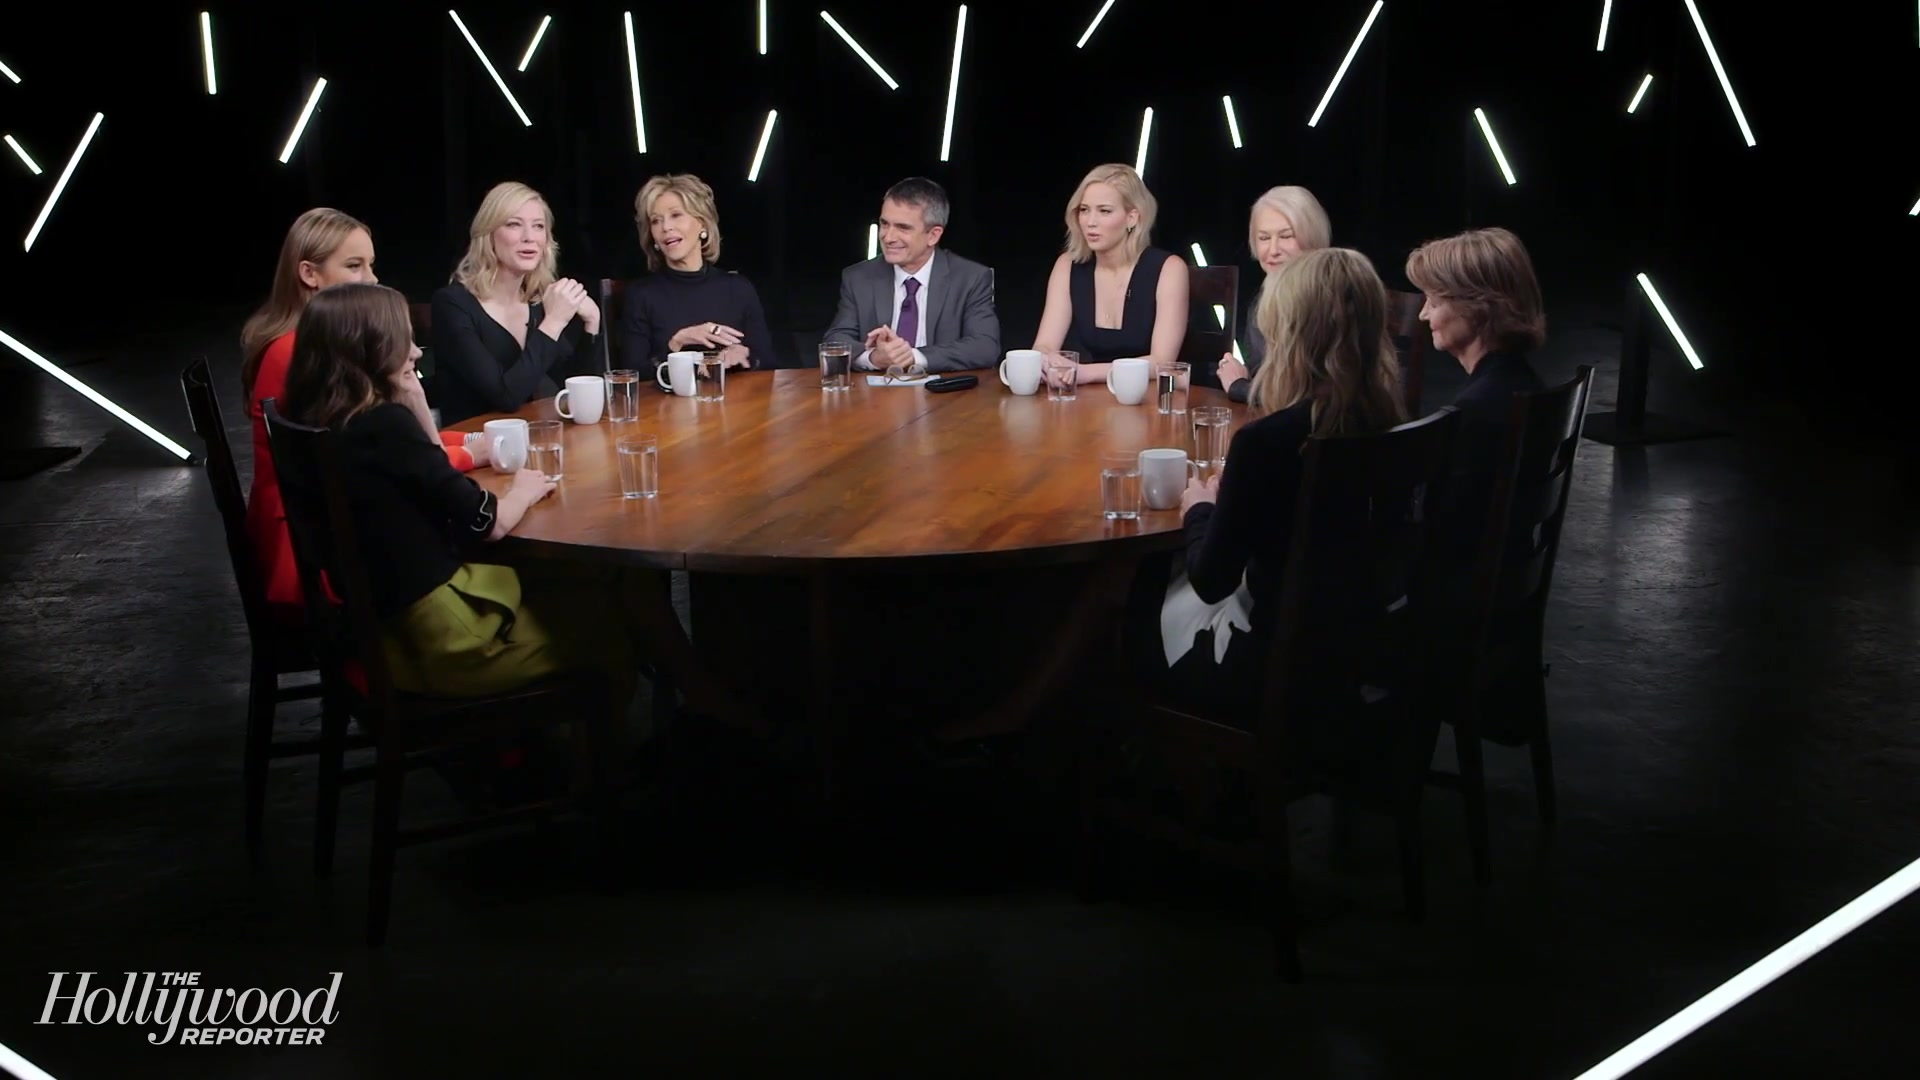 The Hollywood Reporter: The Actress Roundtable – Full interview